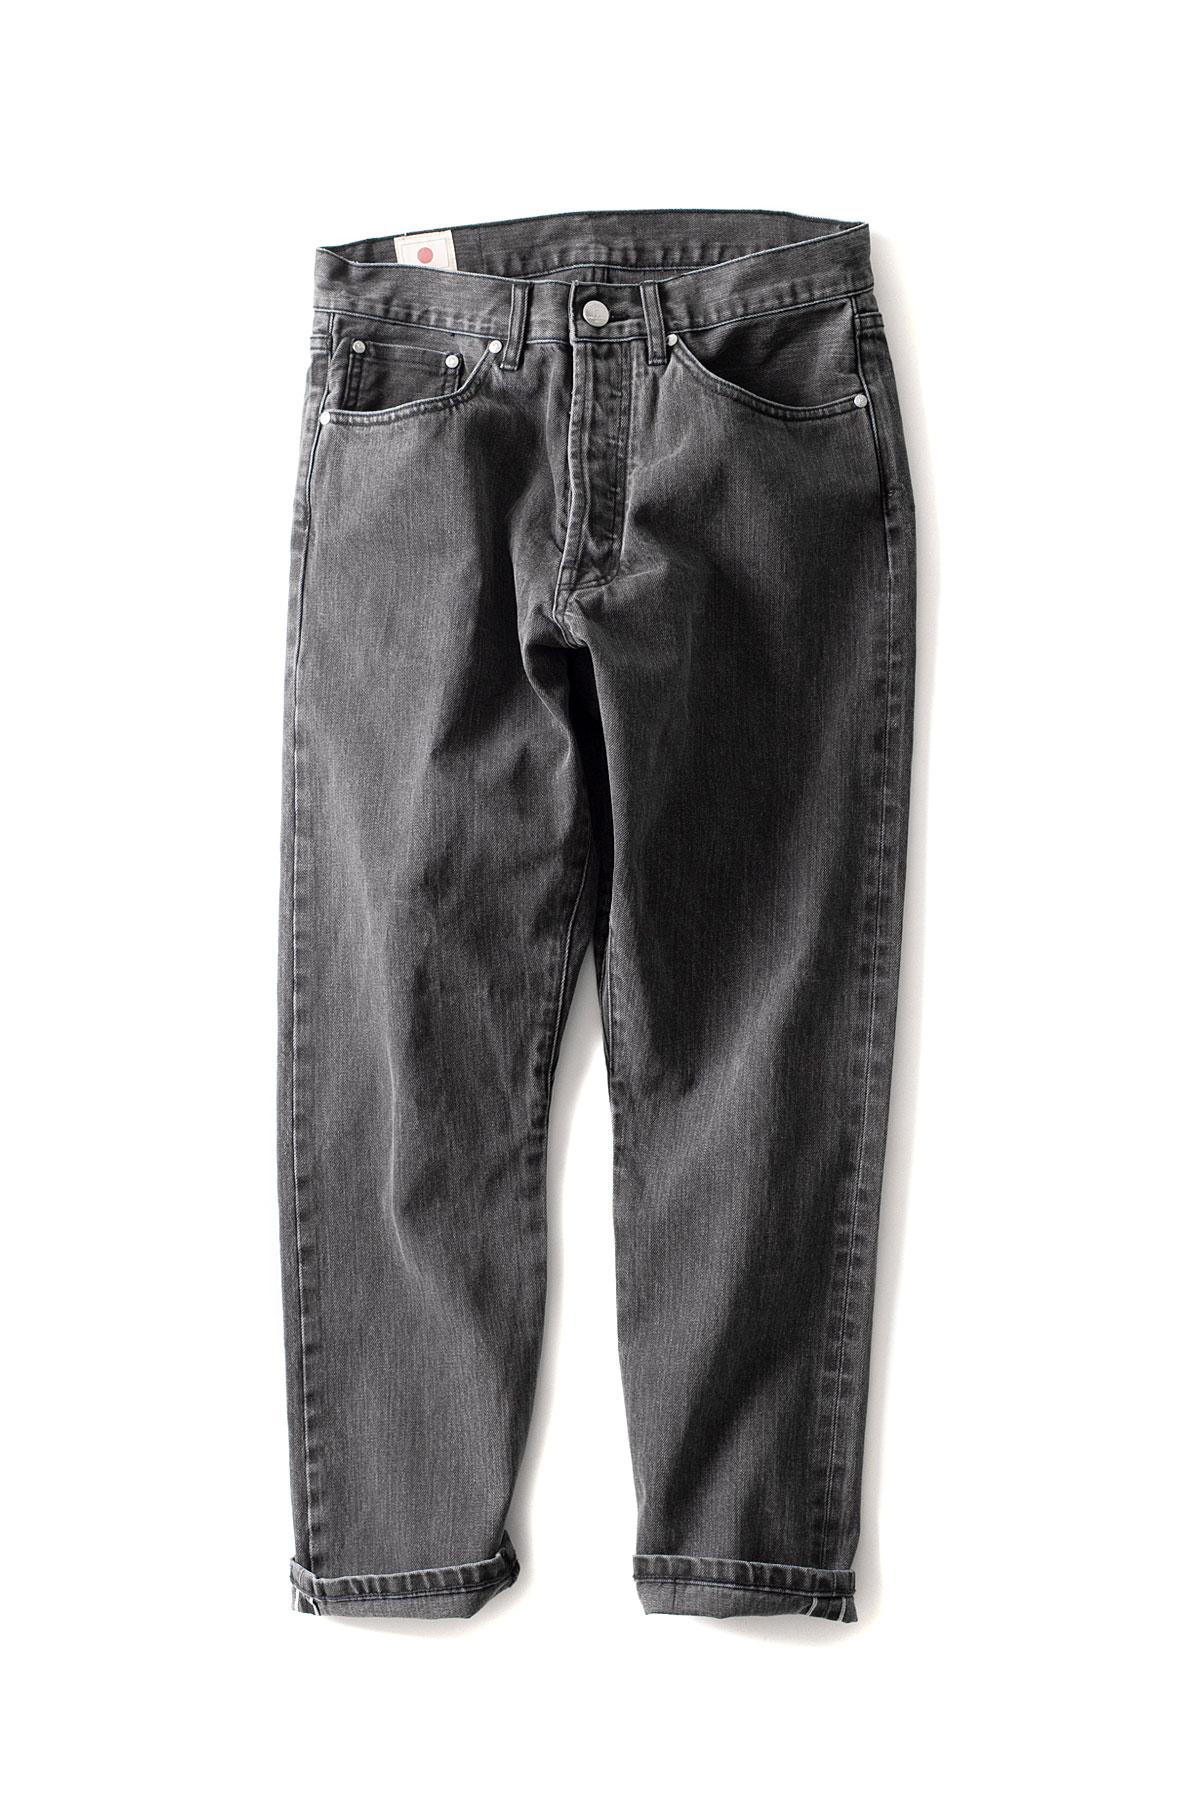 HAN KJOBENHAVN : Drop Crotch Jeans (Black Stone Wash)